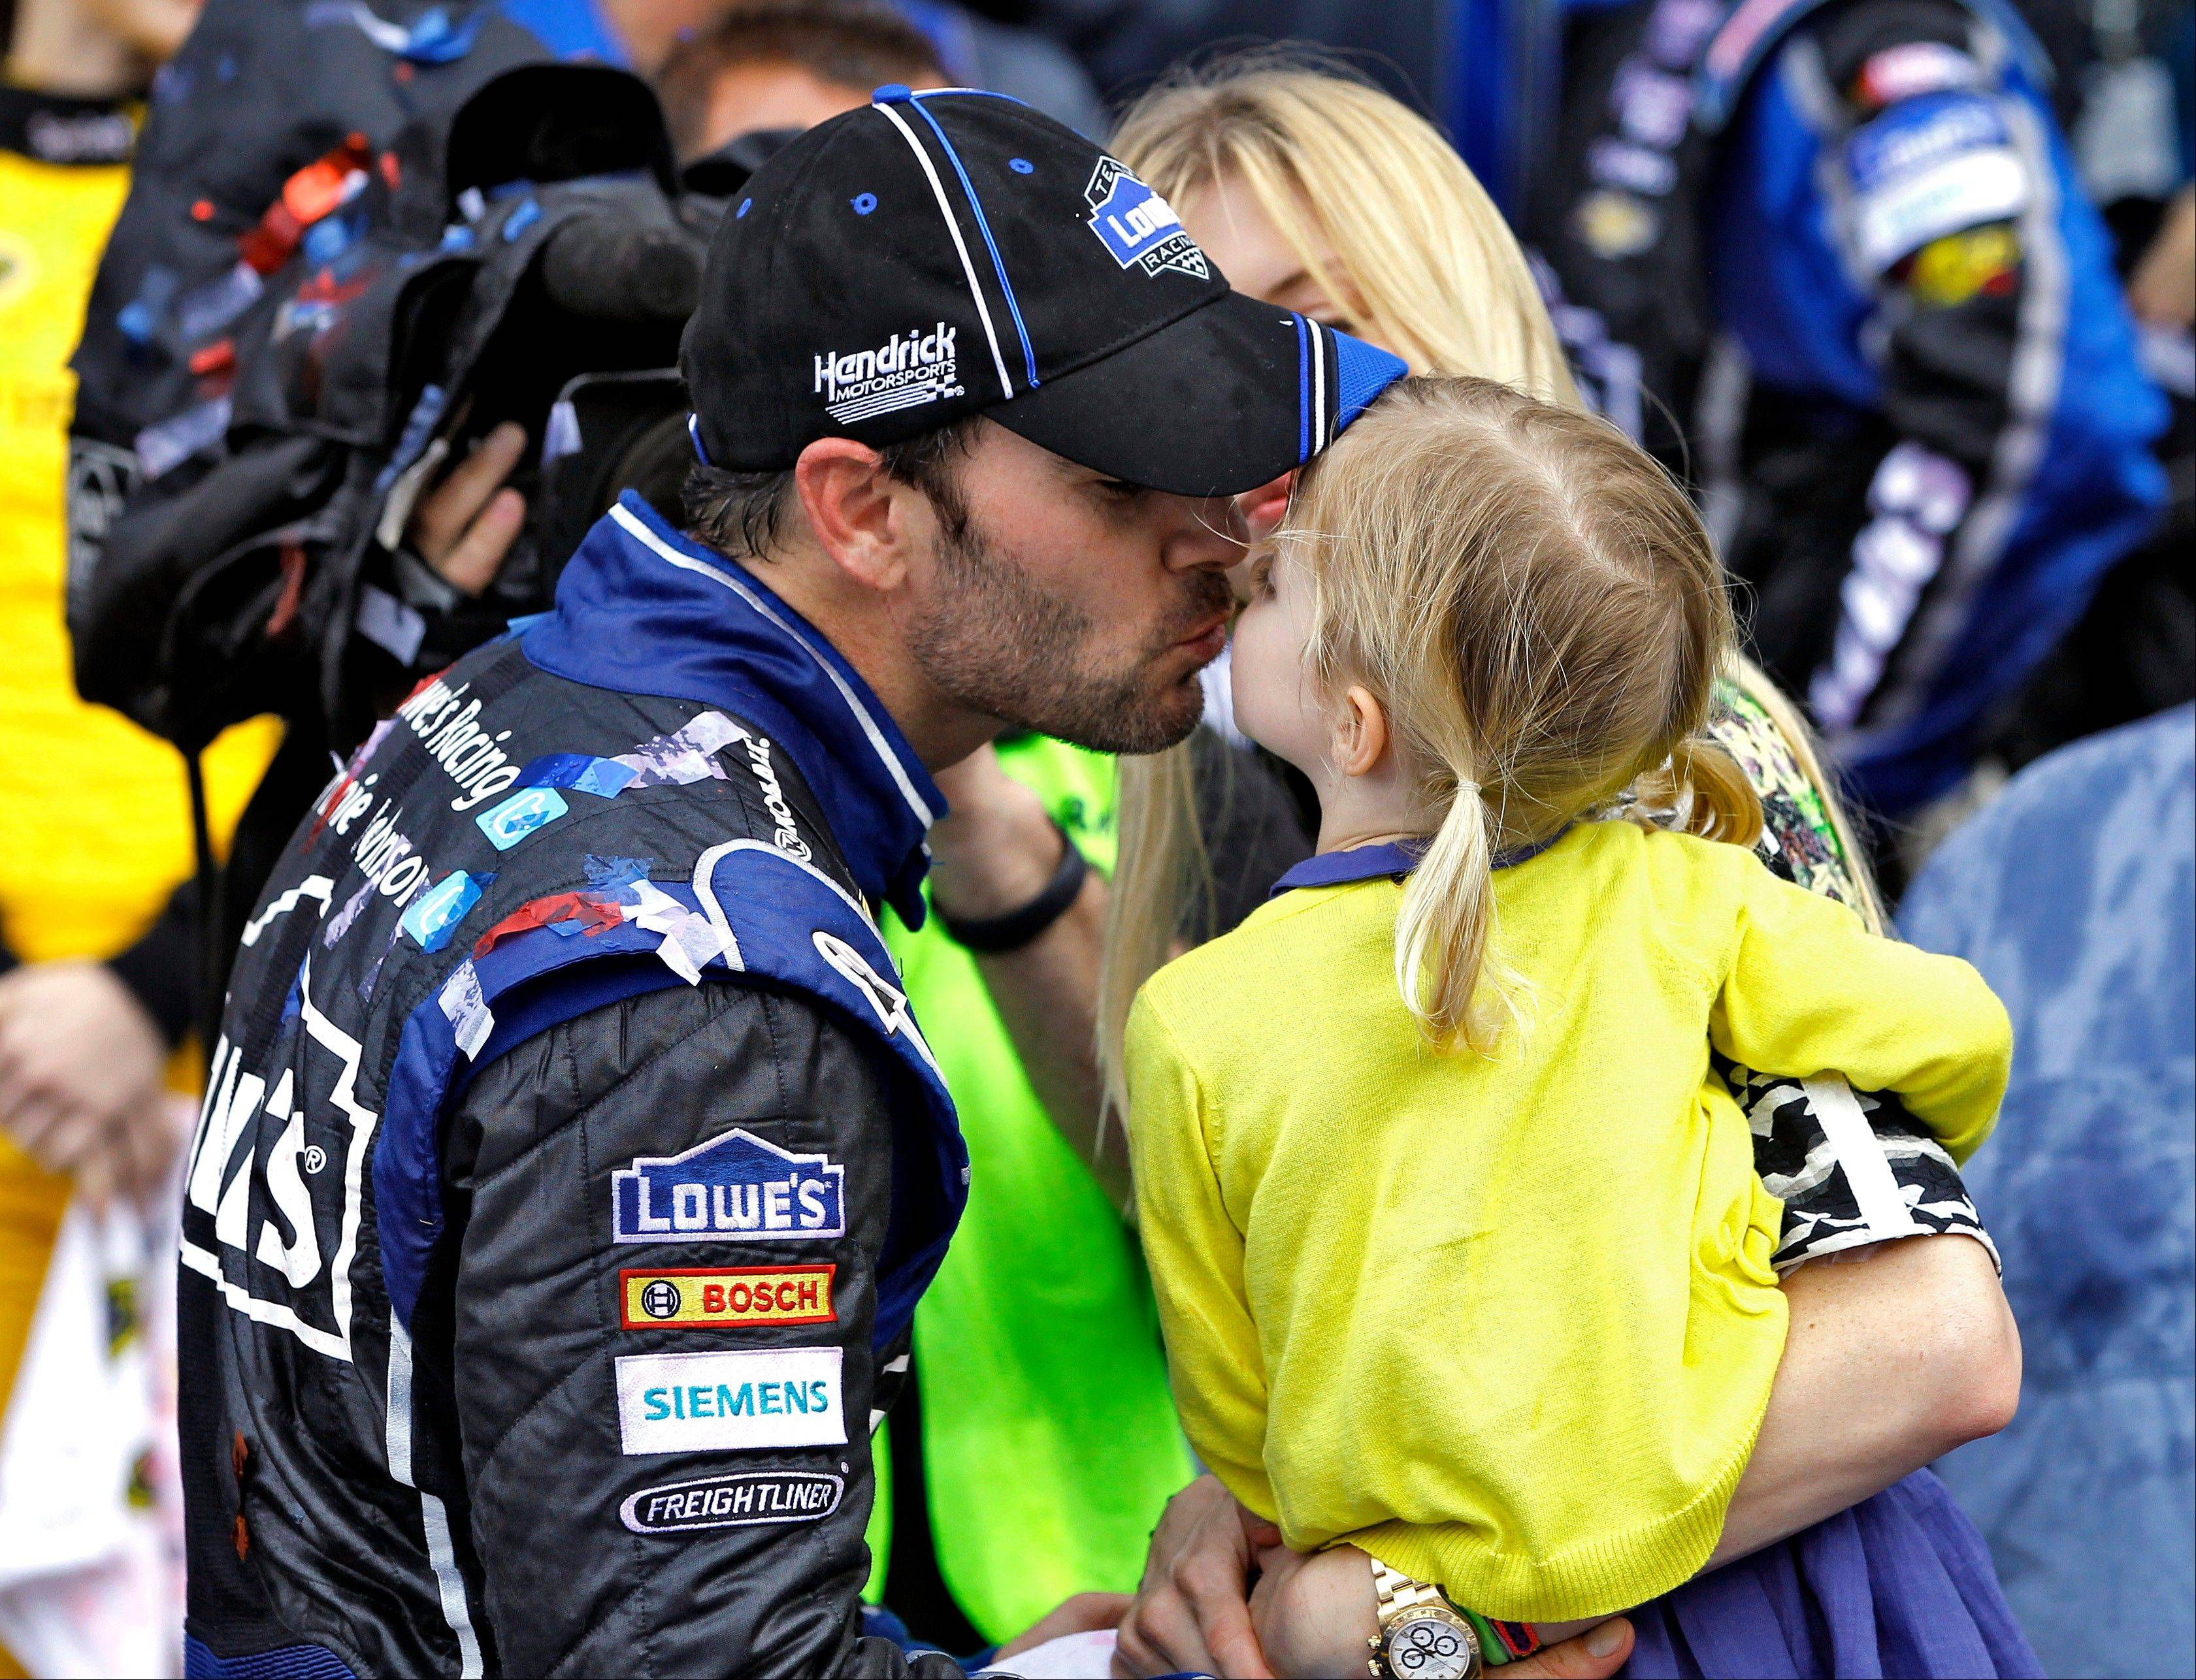 Jimmie Johnson kisses his daughter Genevieve Marie in Victory Lane after winning the Daytona 500 NASCAR Sprint Cup Series auto race, Sunday, Feb. 24, 2013, at Daytona International Speedway in Daytona Beach, Fla.